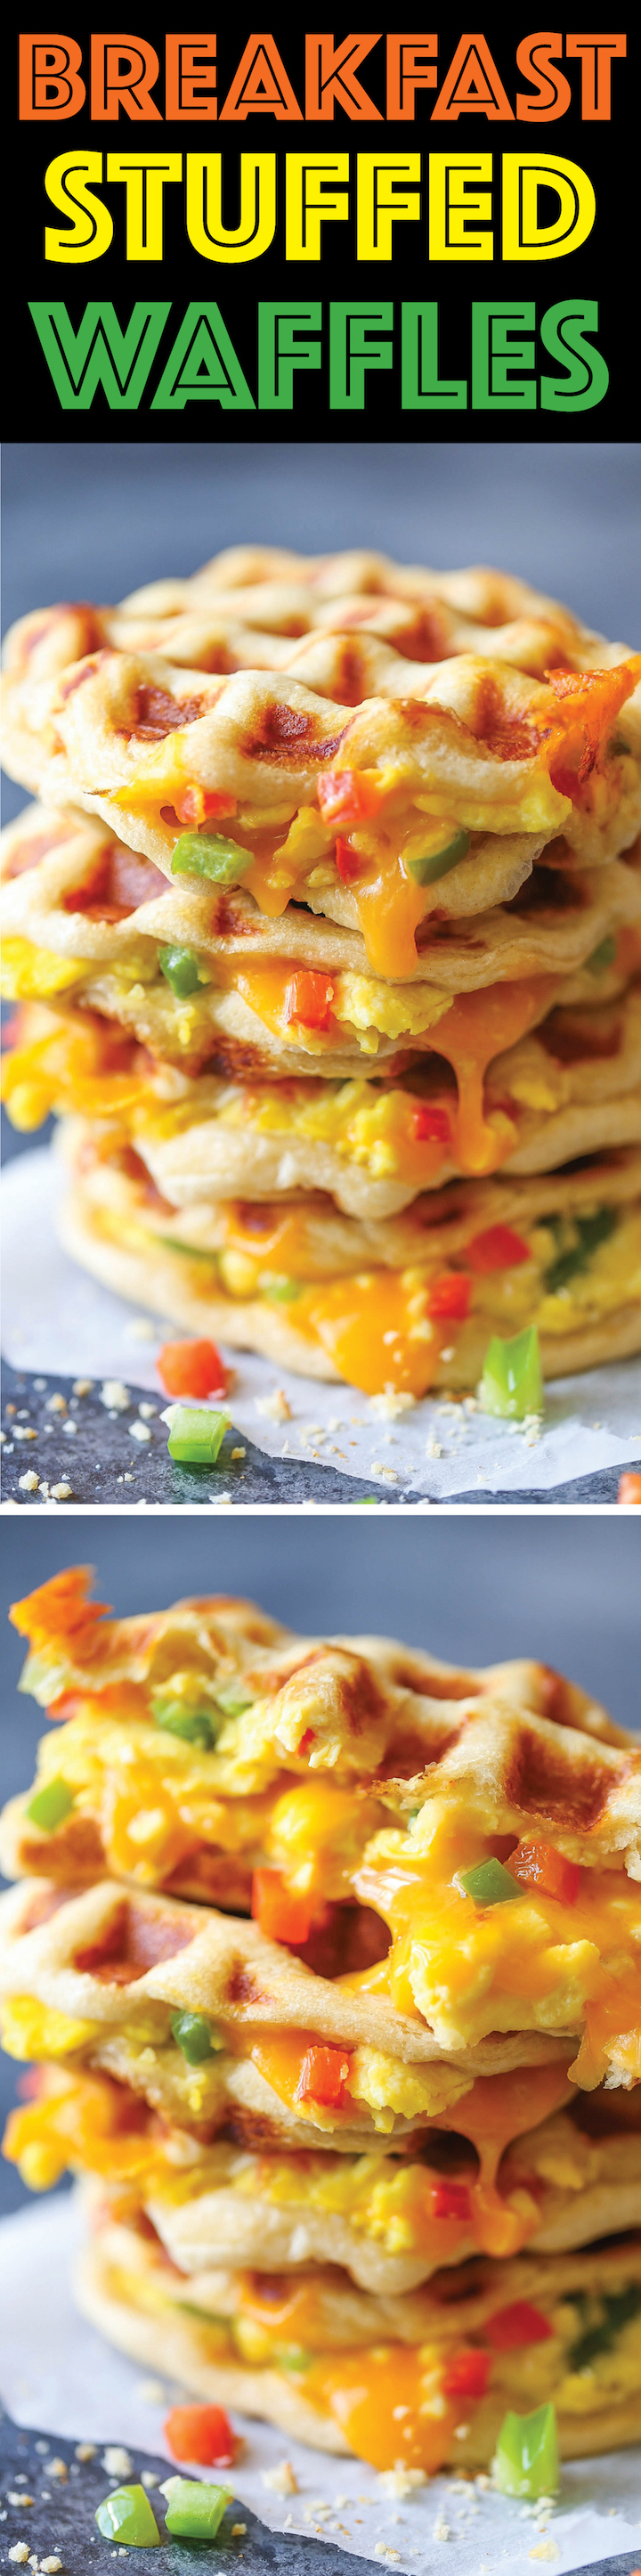 Breakfast Stuffed Waffles - The most epic YET EASIEST portable breakfast. Biscuit dough is transformed into waffles, stuffed with cheesy scrambled eggs!